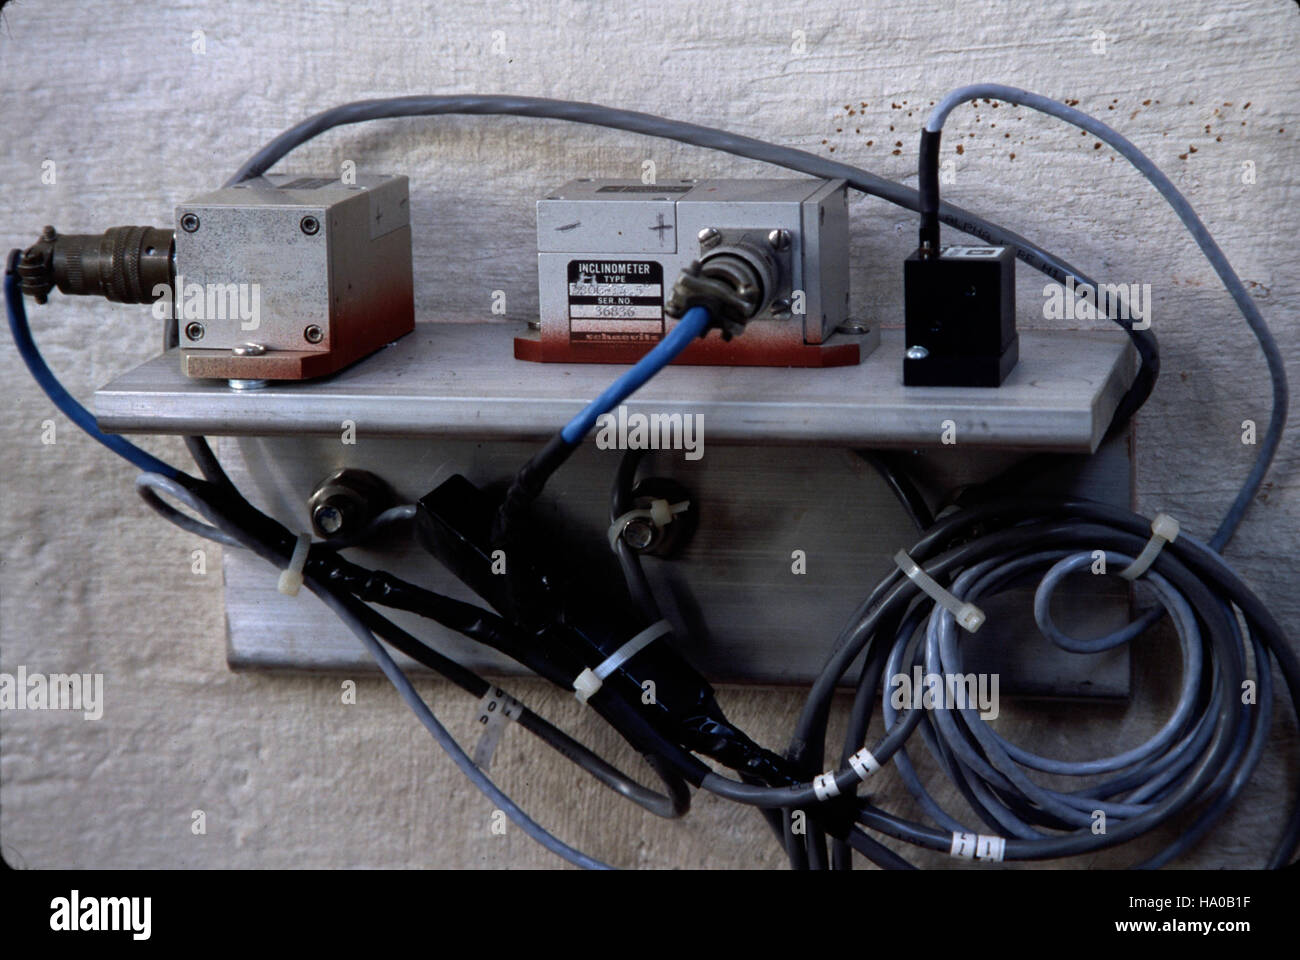 Inclinometer Stock Photos Images Alamy Wiring Diagram Capehatterasnps 12090095896 1999 Image